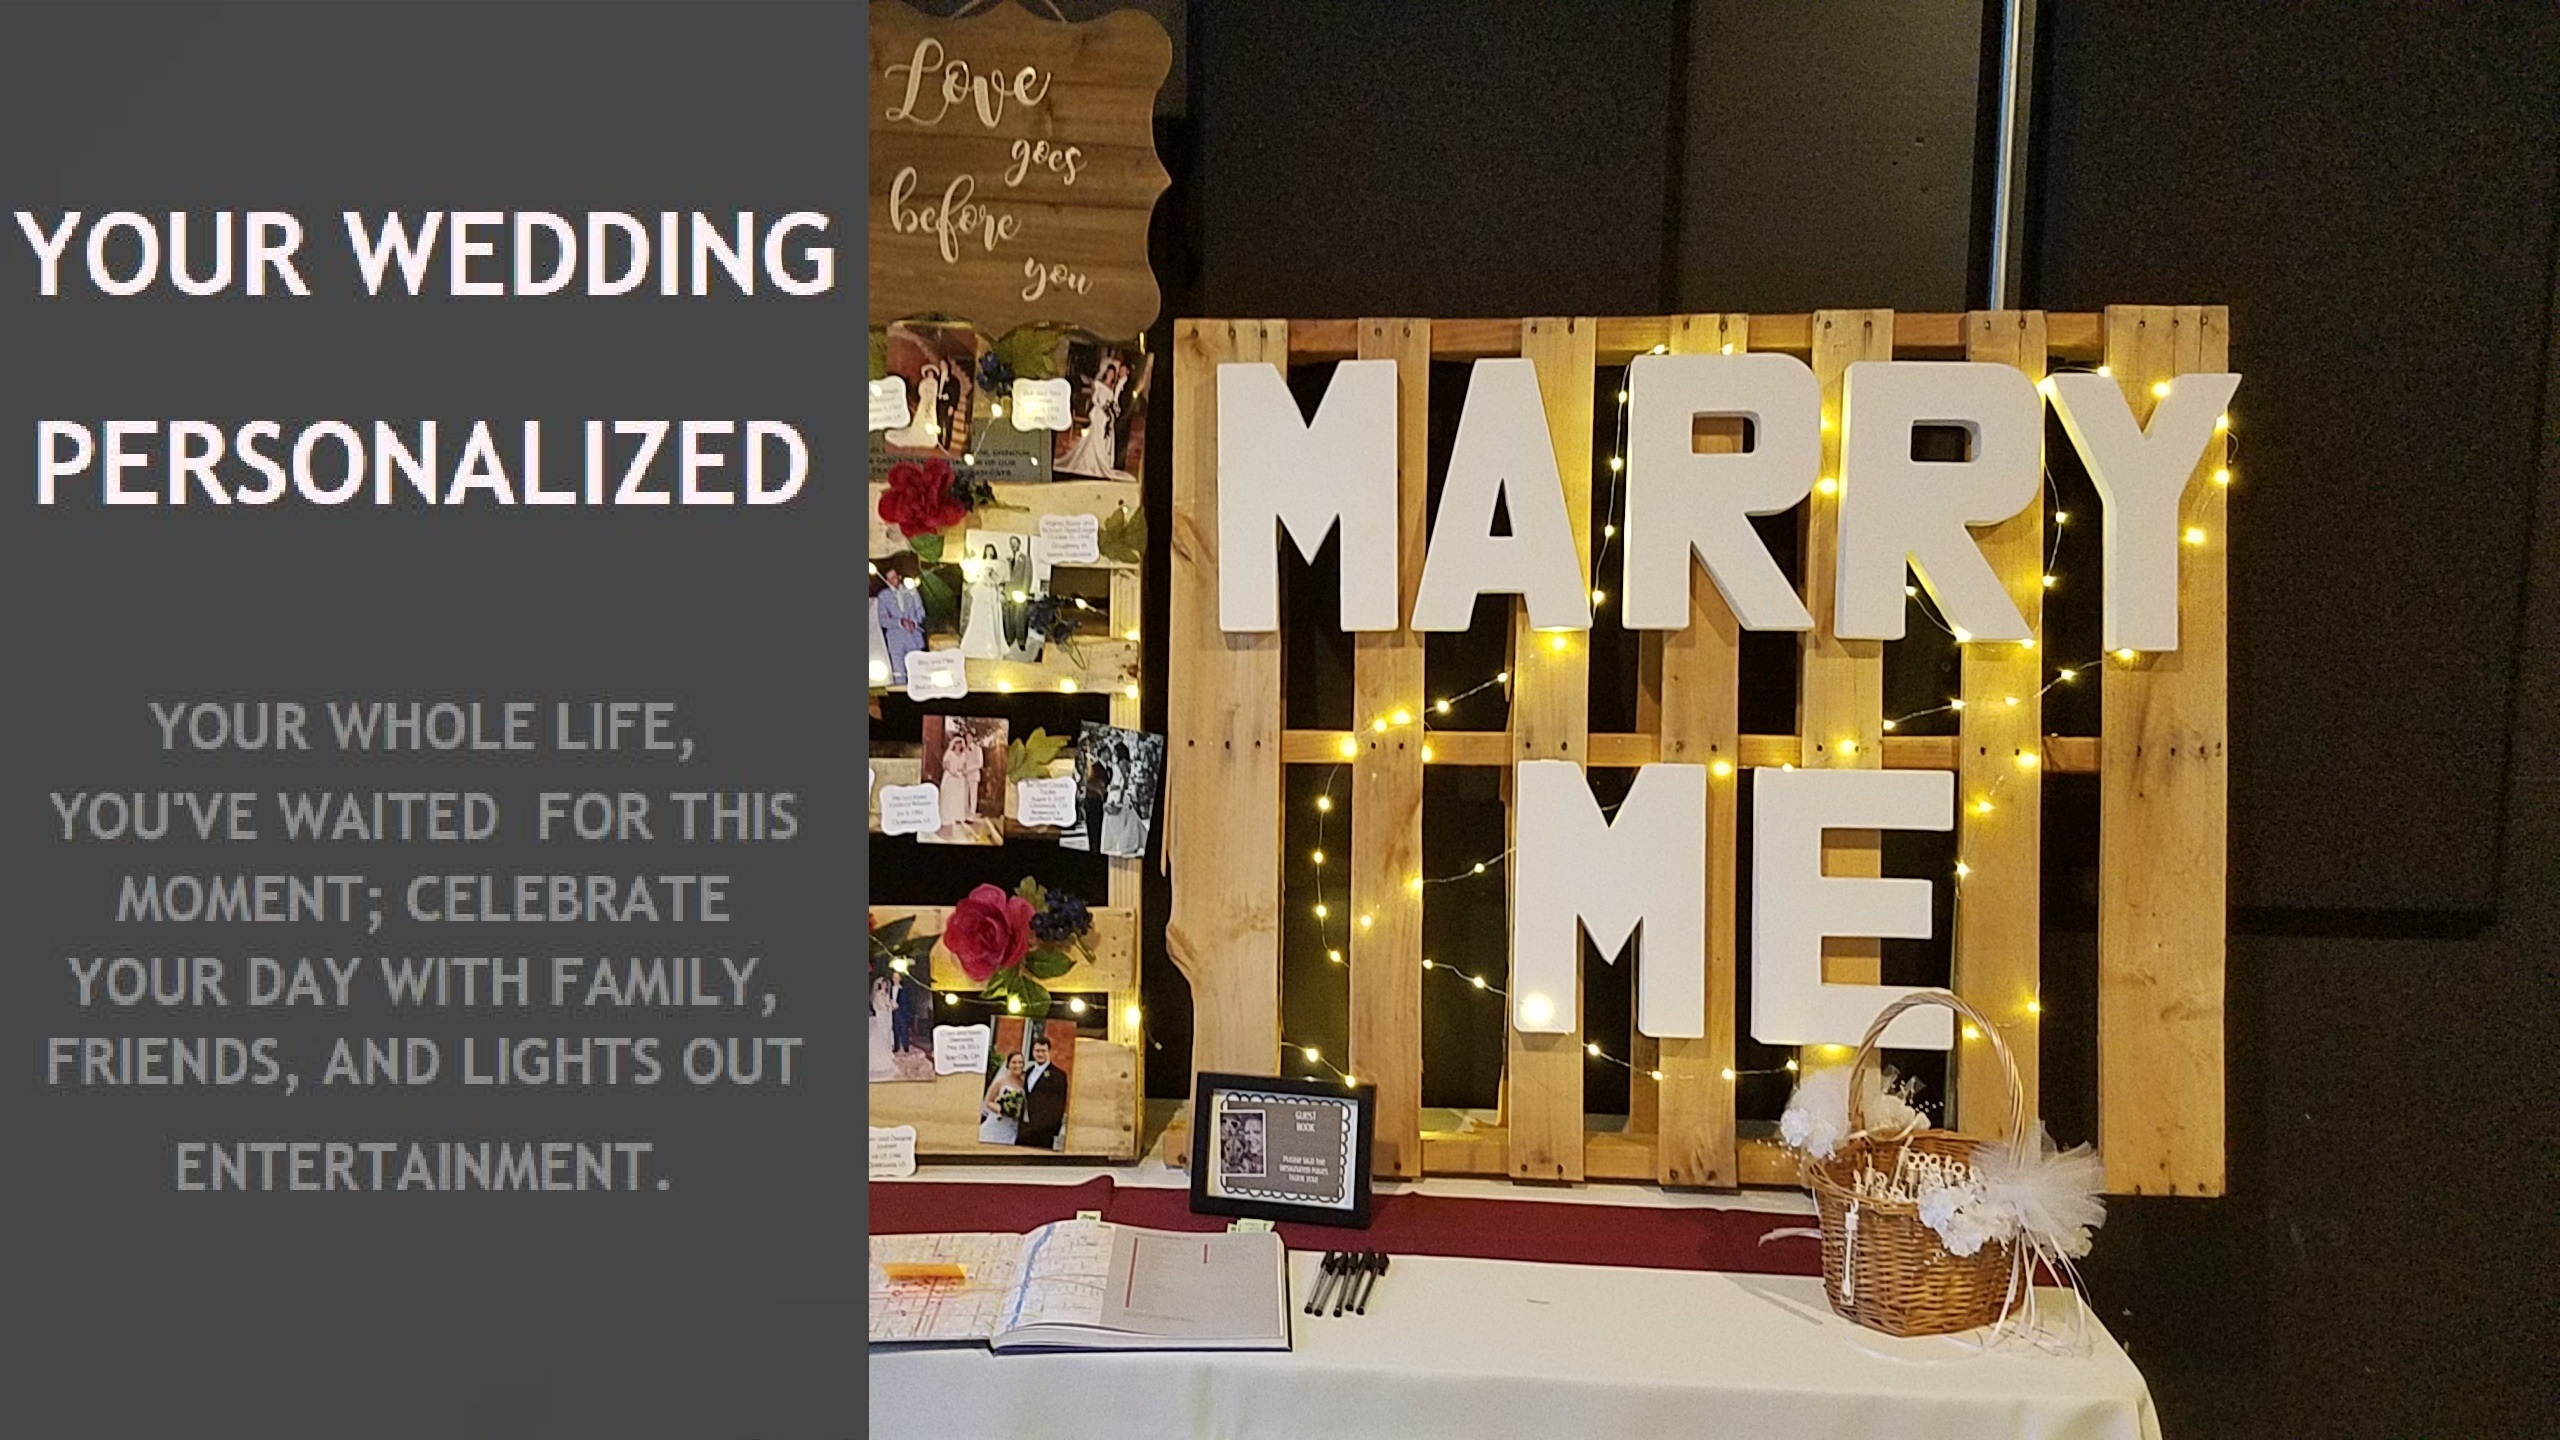 Your Wedding Personalized